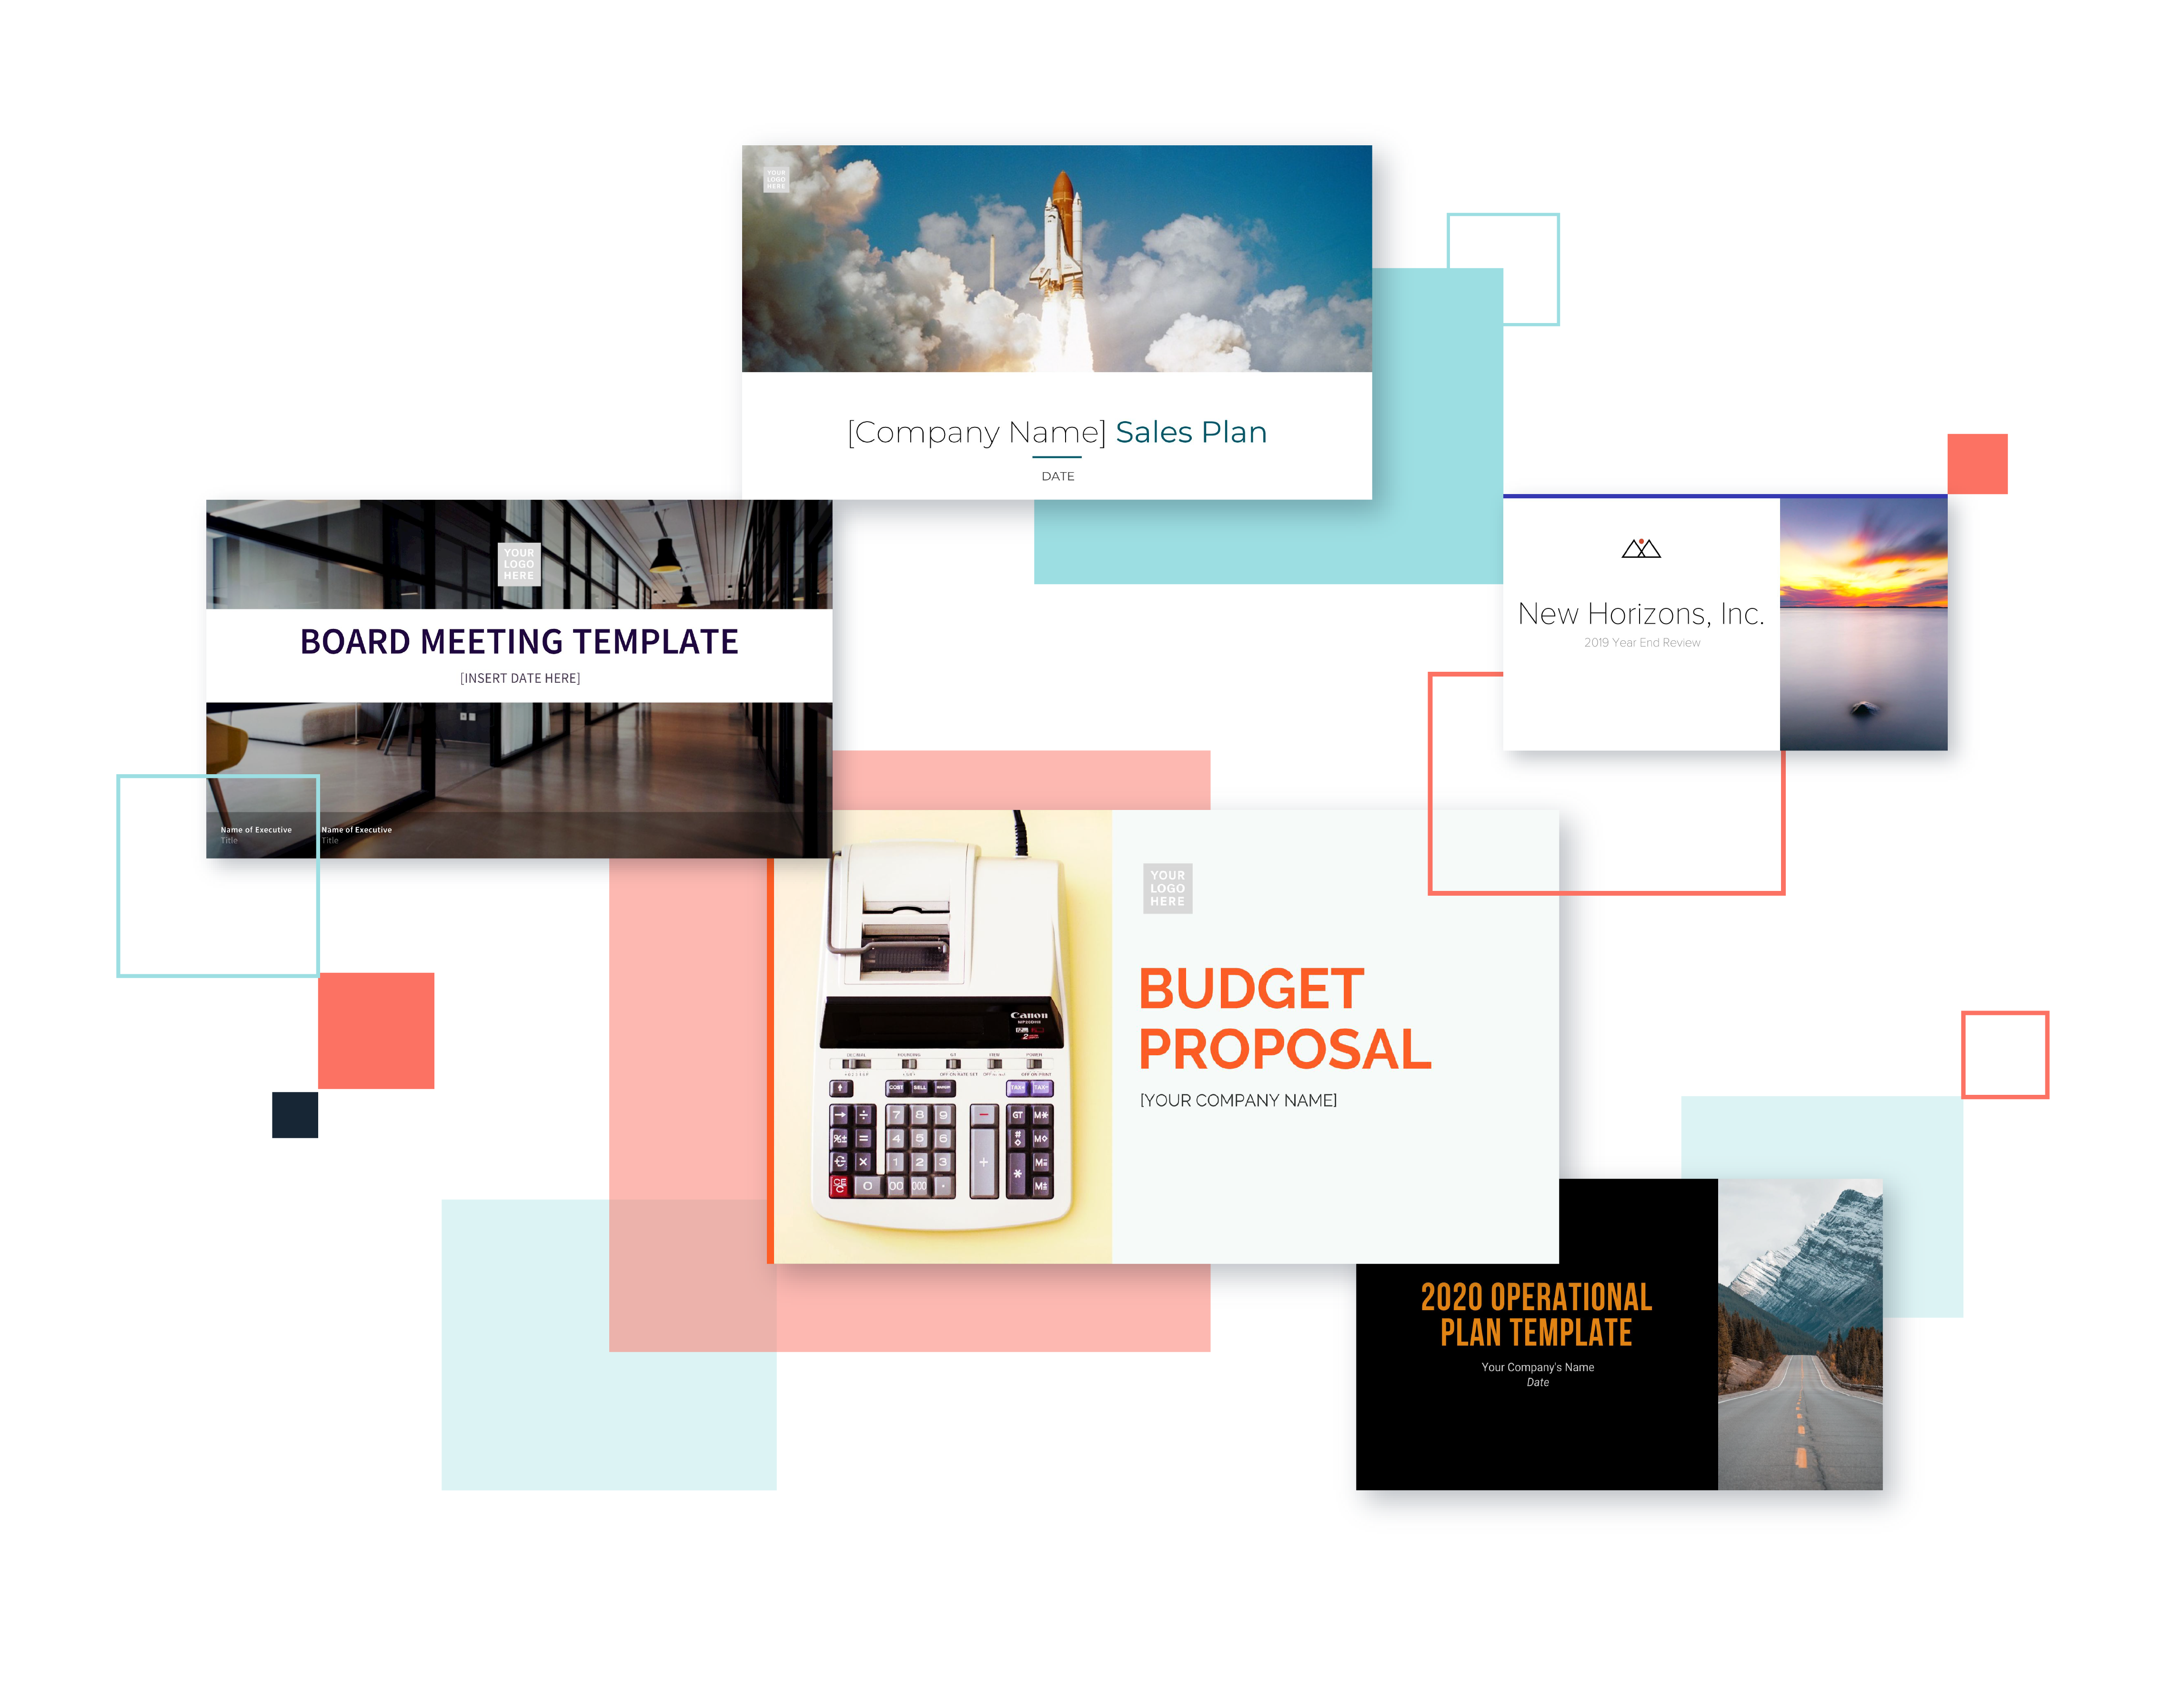 5 Presentation Templates That You Might Not Think About Using (But Should)